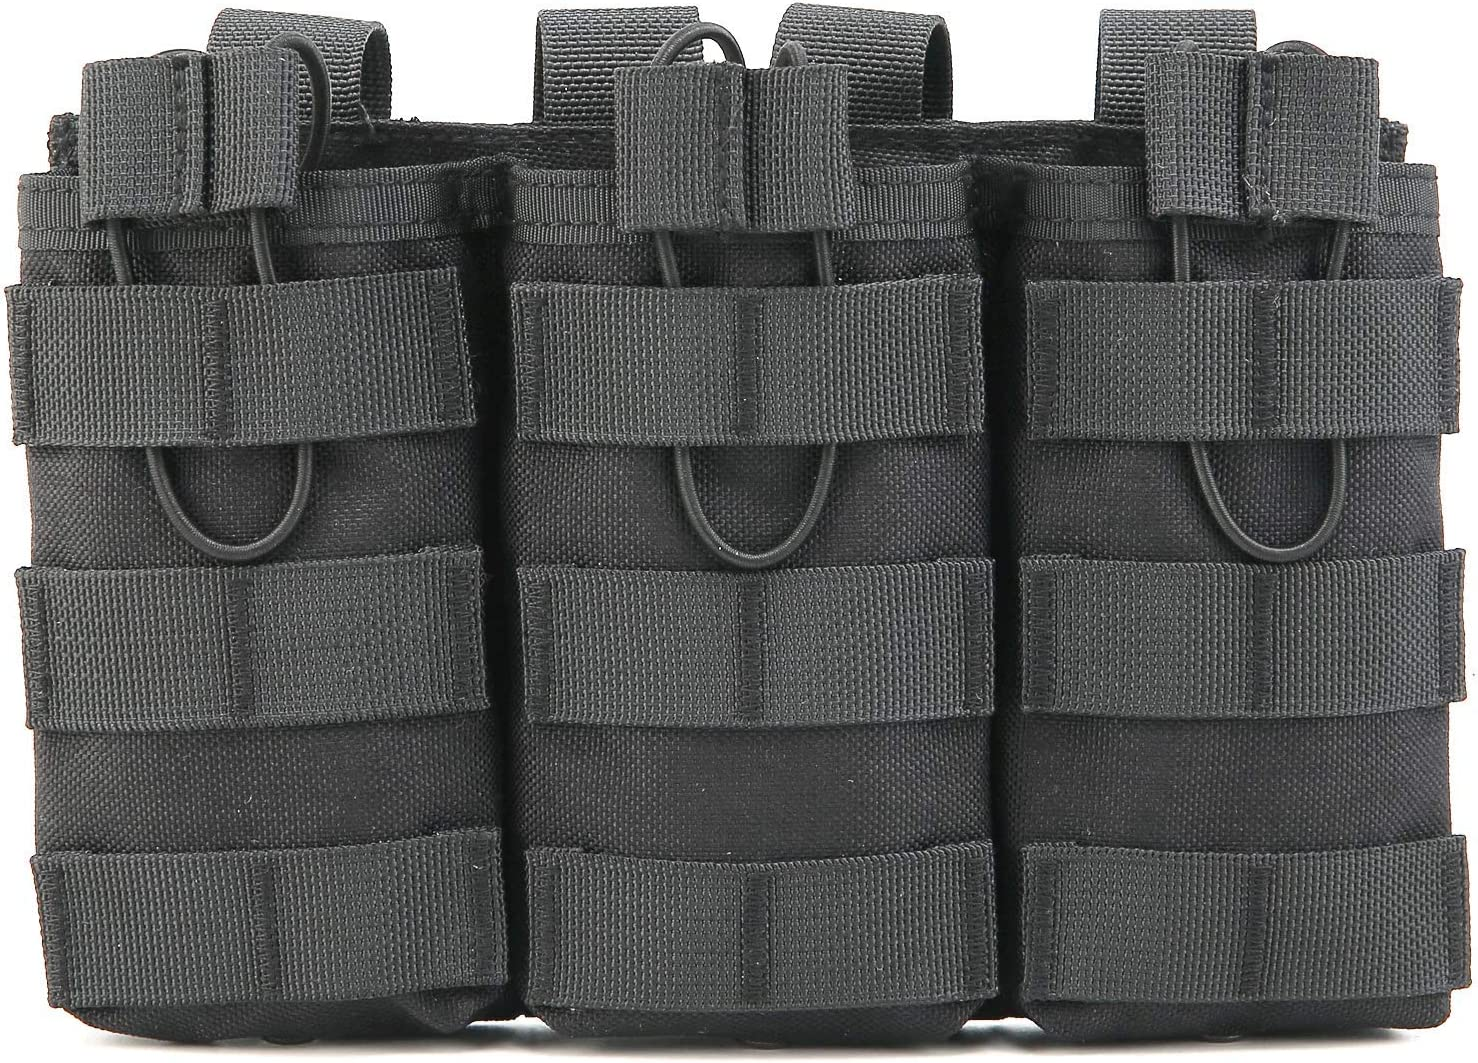 Tactical Outdoor Triple Popular standard M4 M16 Top Mag Shipping included Pouch Open